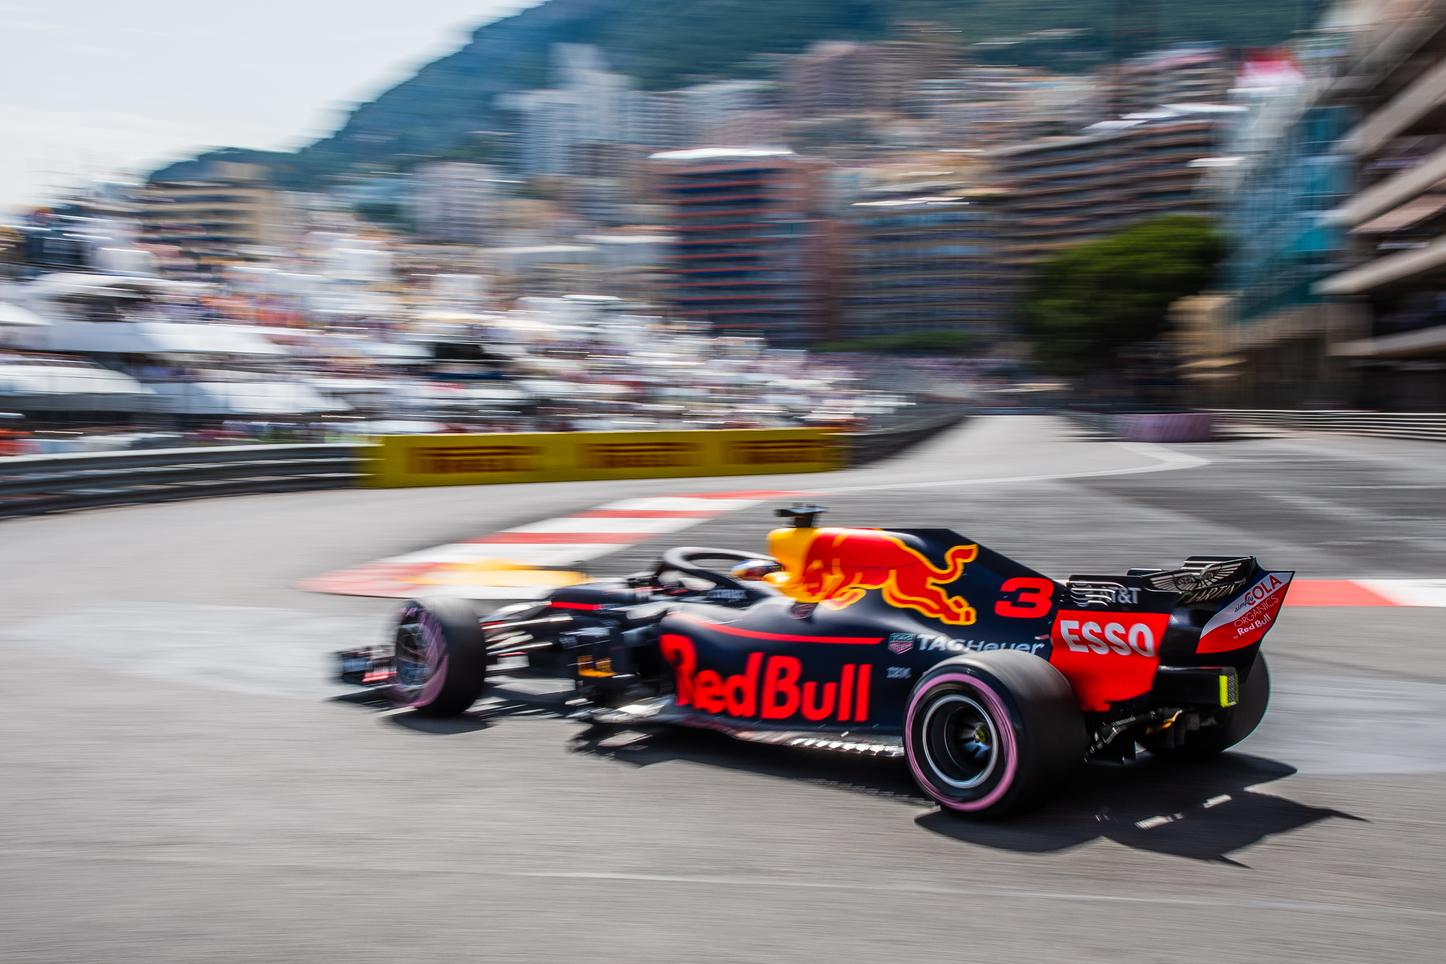 How to do the F1 Monaco Grand Prix like a VIP